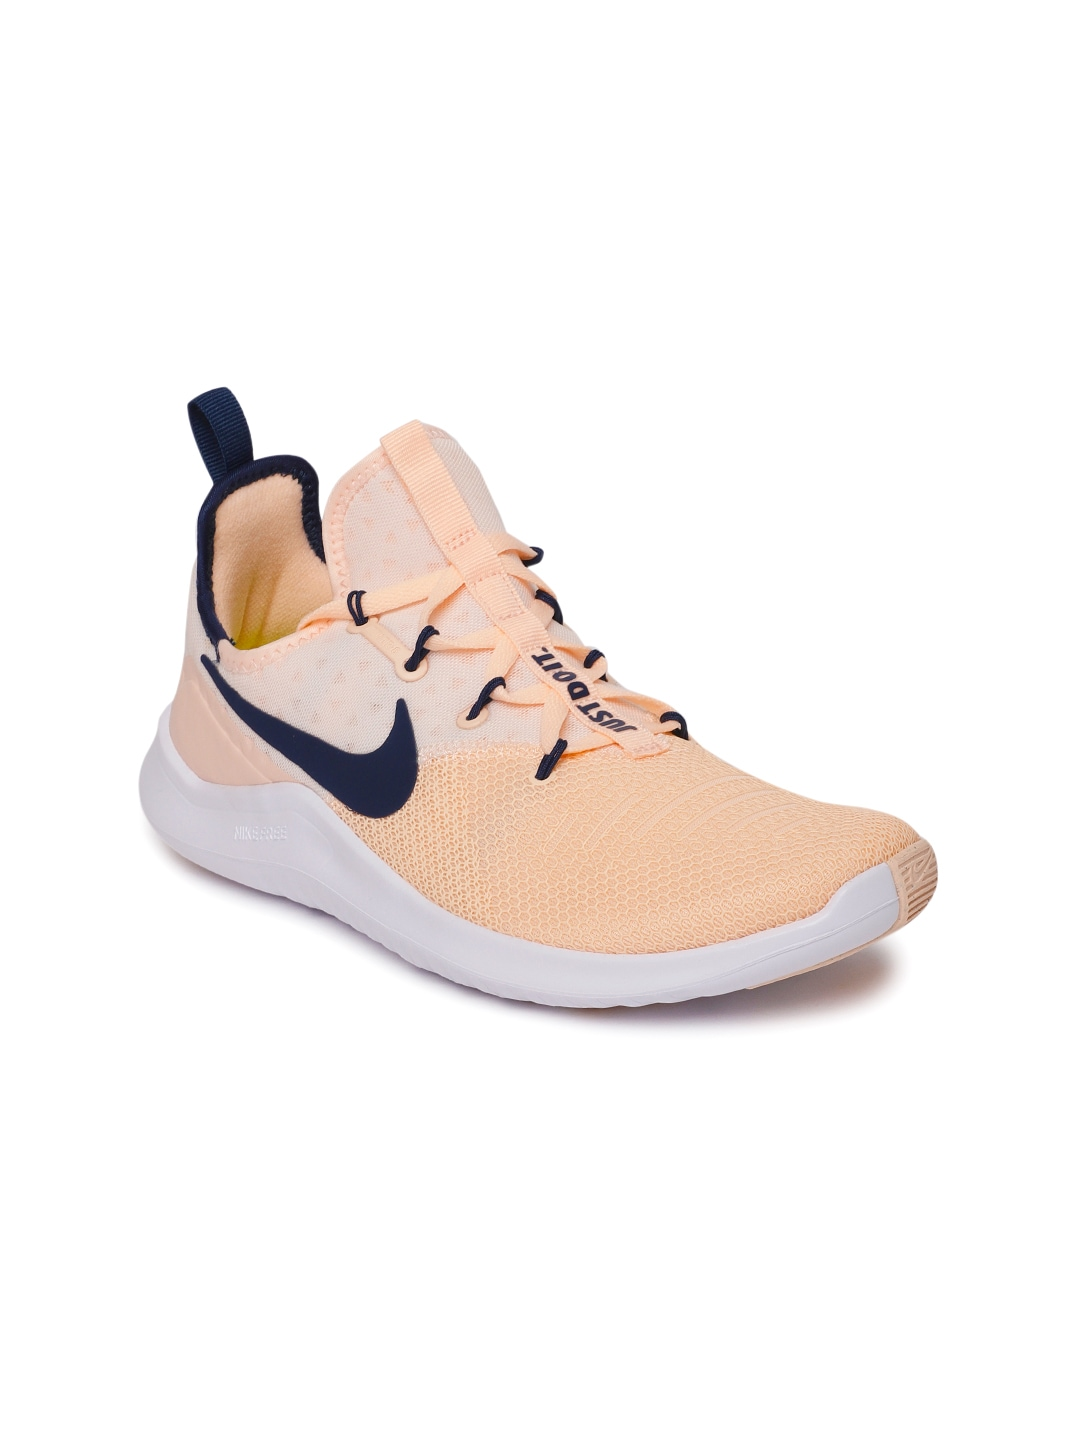 e87f35e0a645 Nike Shoes - Buy Nike Shoes for Men